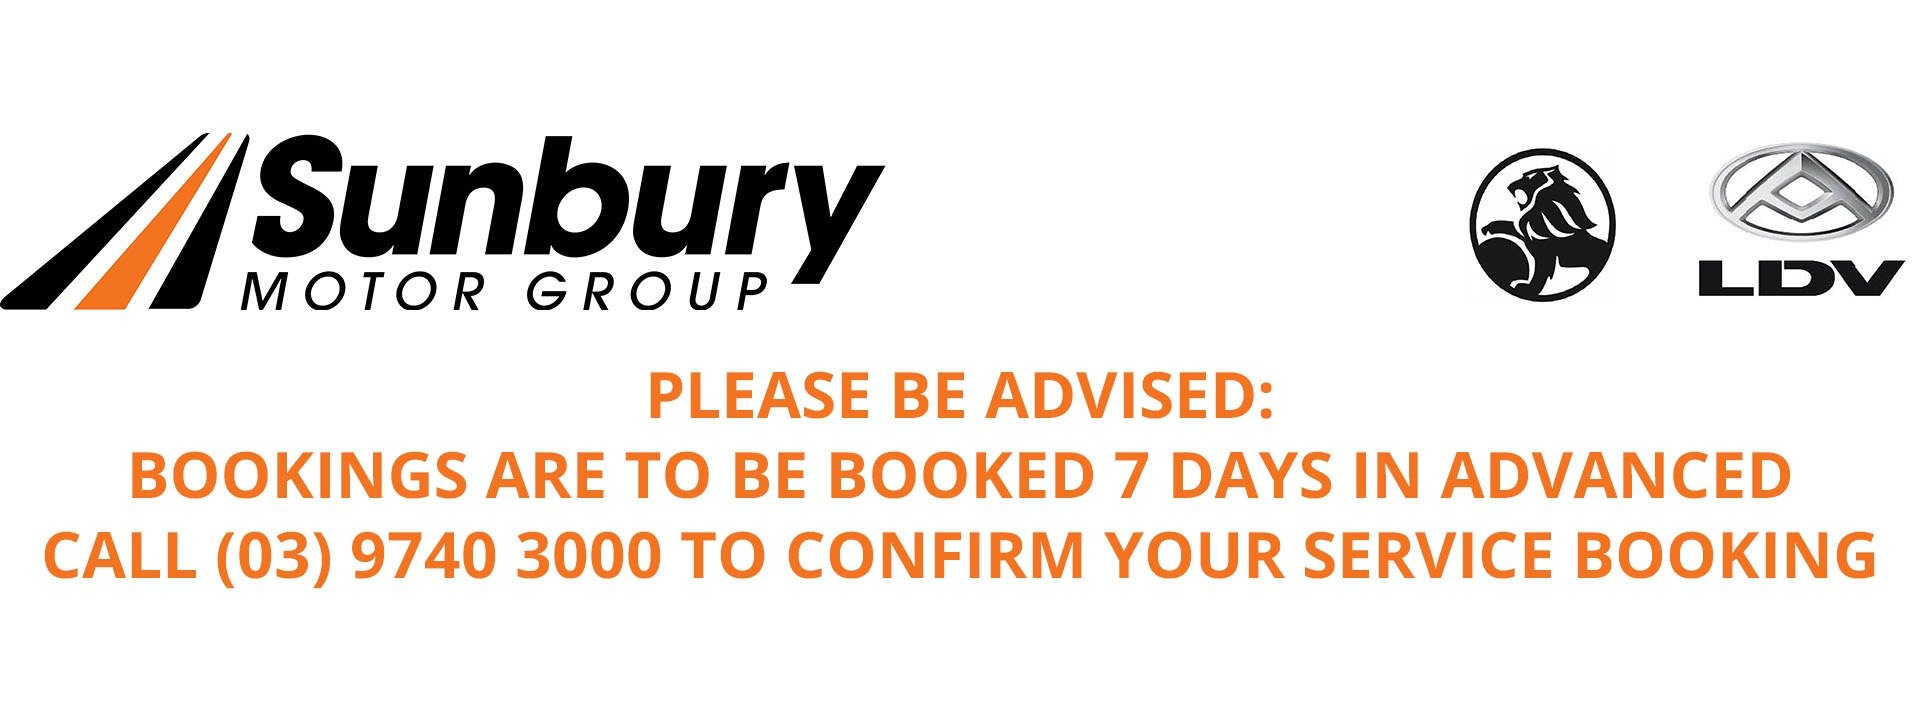 Sunbury Motor Group - Service Notice